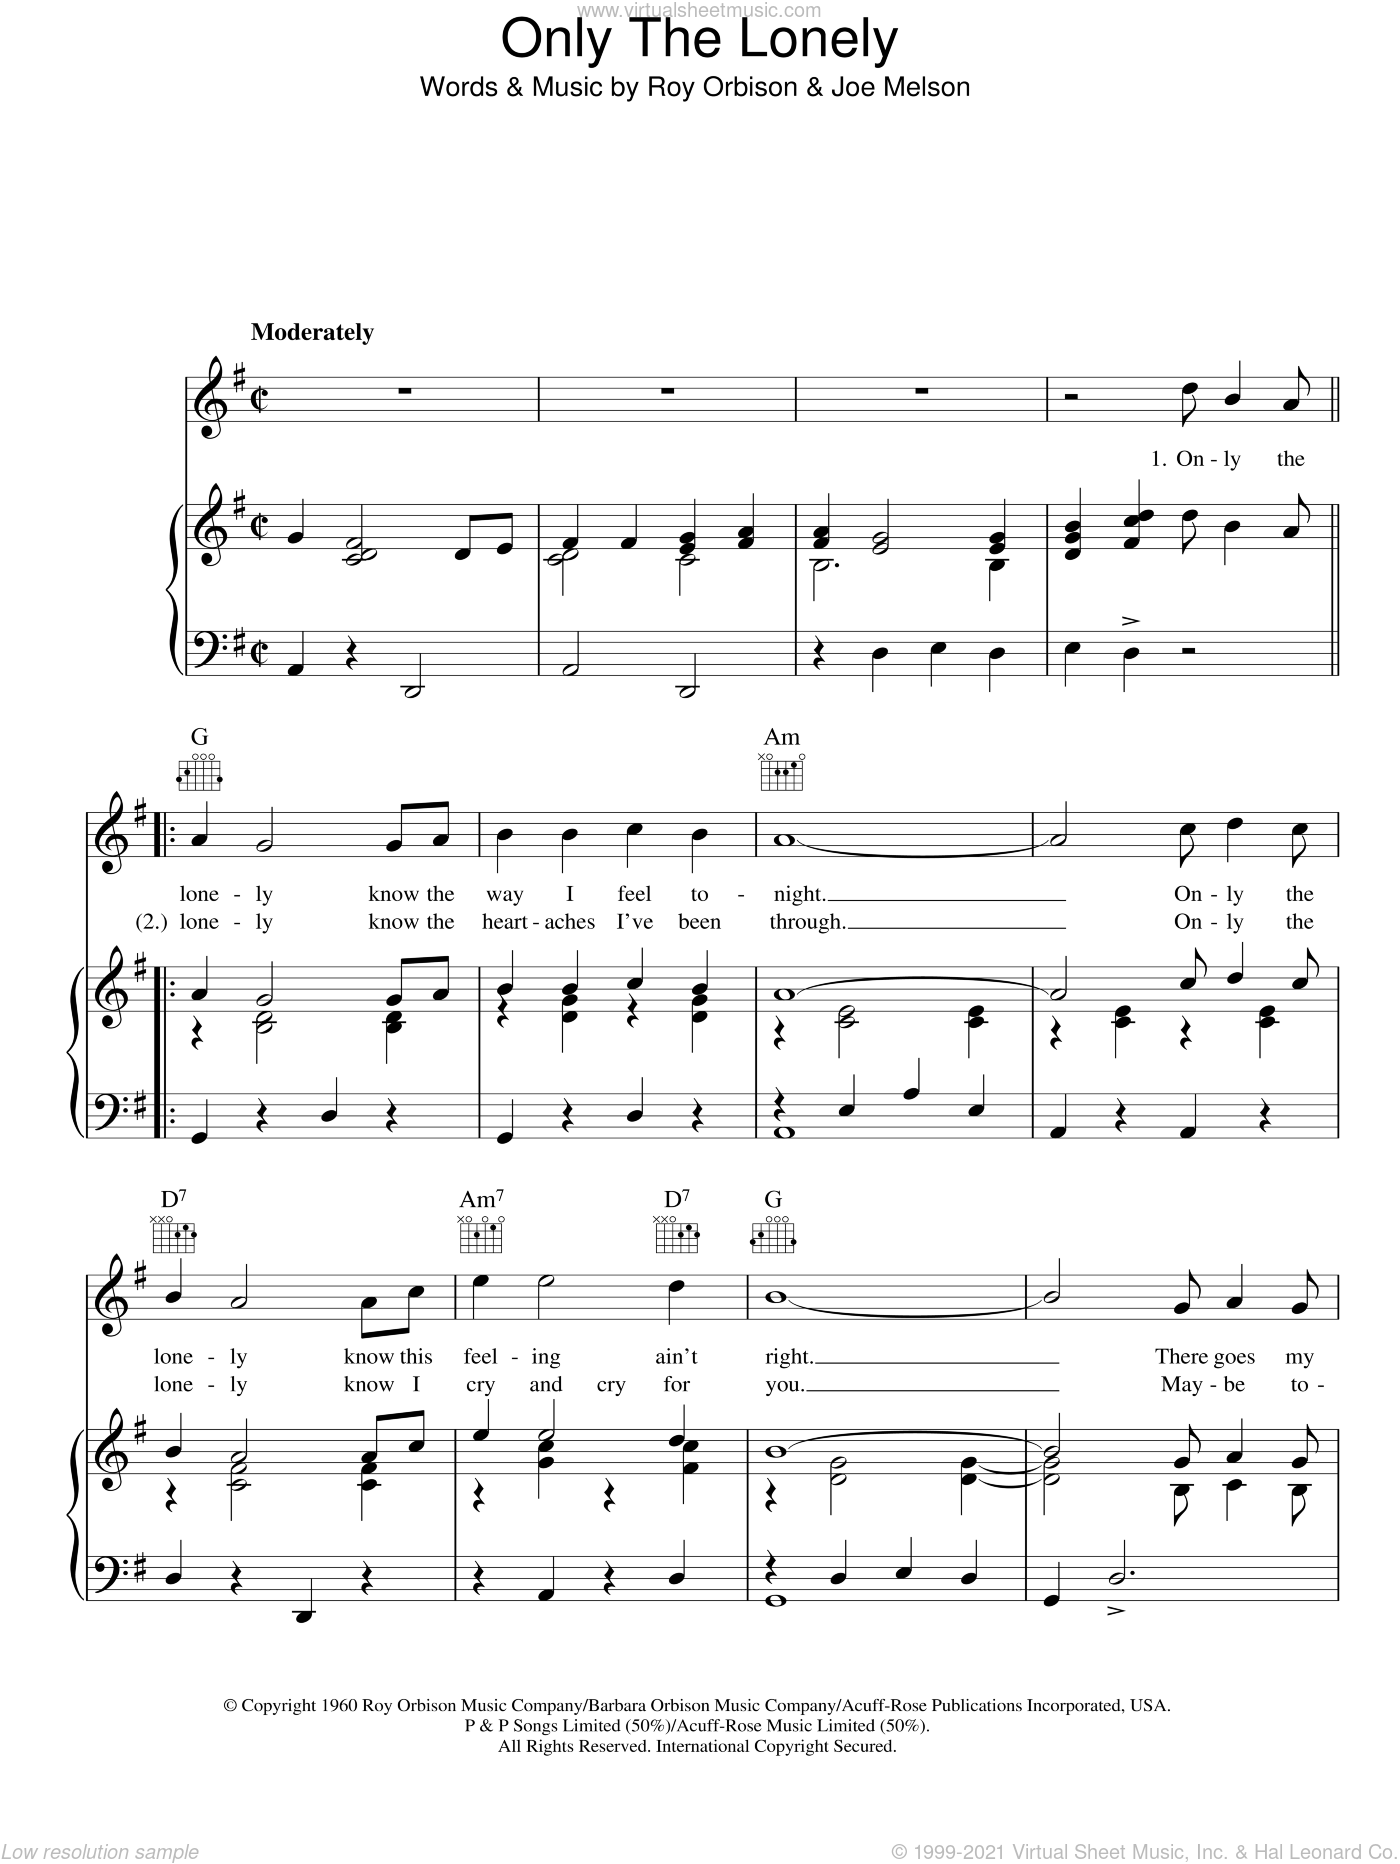 Only The Lonely sheet music for voice, piano or guitar by Joe Melson